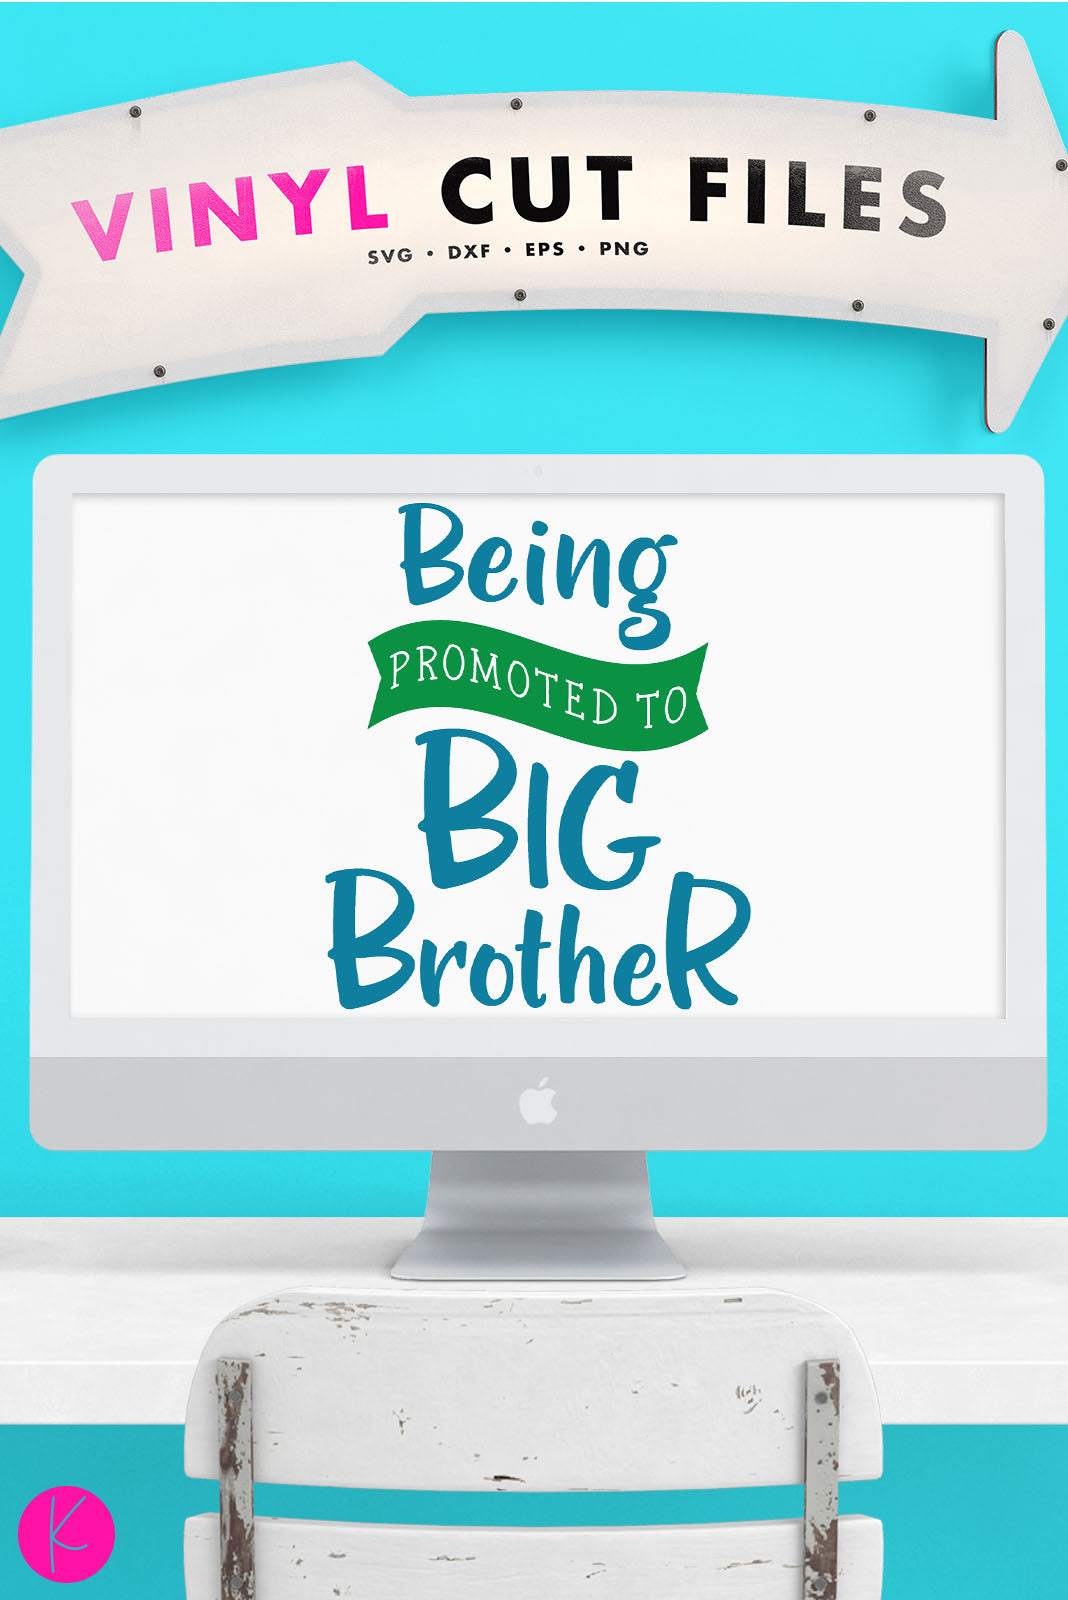 Being Promoted to Big Brother | SVG DXF EPS PNG Cut Files Promoted Pregnancy Announcement Shirt Design for the New Big Brother | SVG DXF PNG Cut Files Cute pregnancy announcement shirt design for the new big brother. Being Promoted to Big